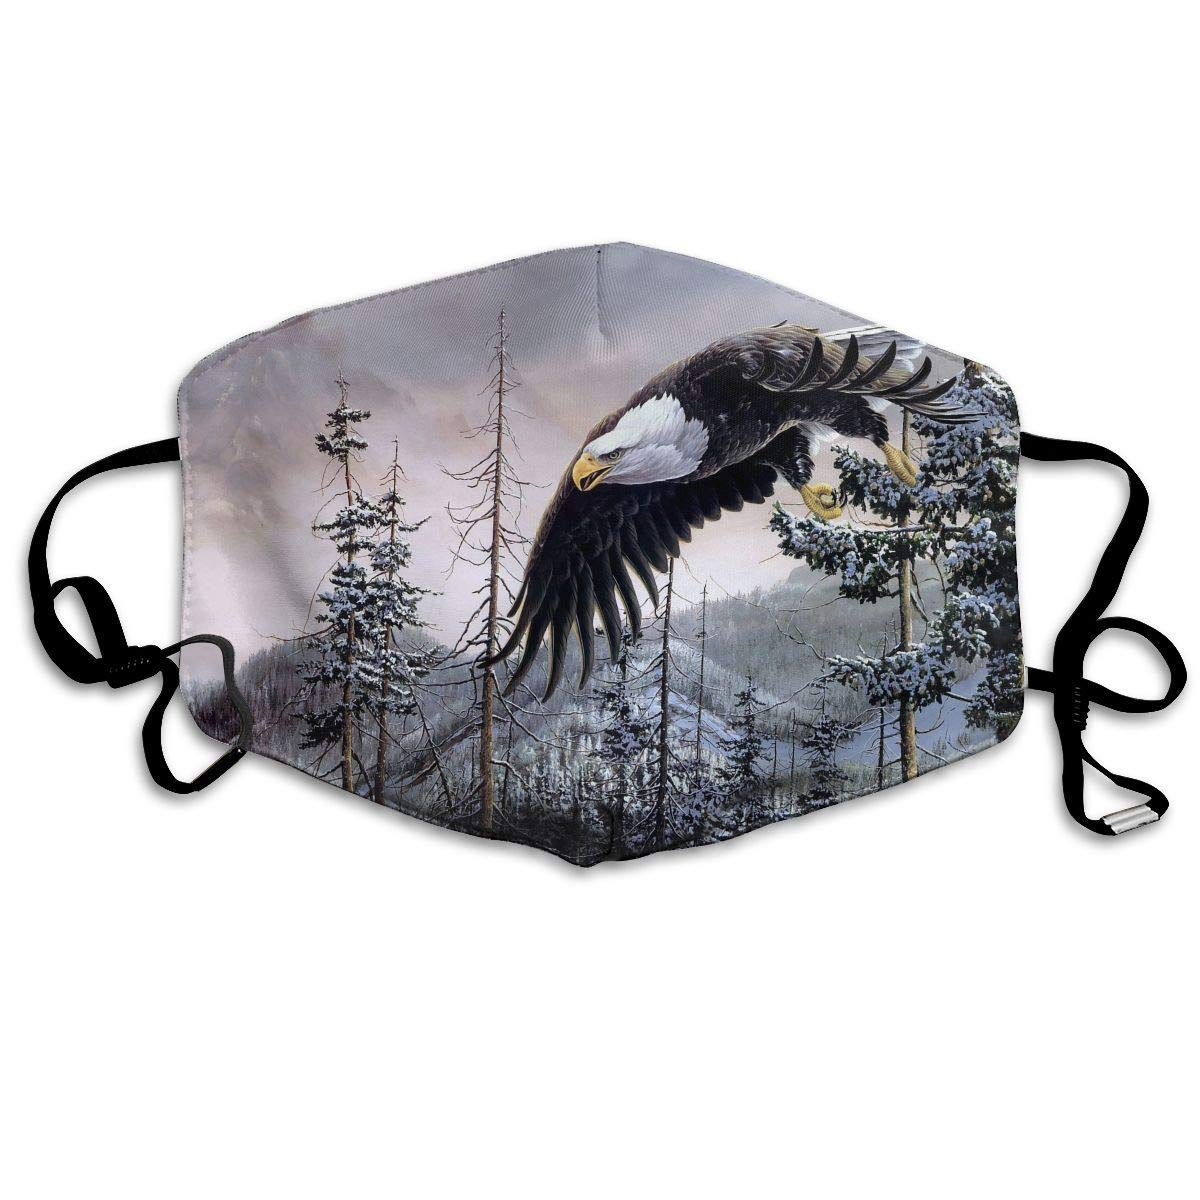 Anti Dust Face Mouth Cover Mask - Breath Healthy Respirator Bald Eagle Print Earloop Mask